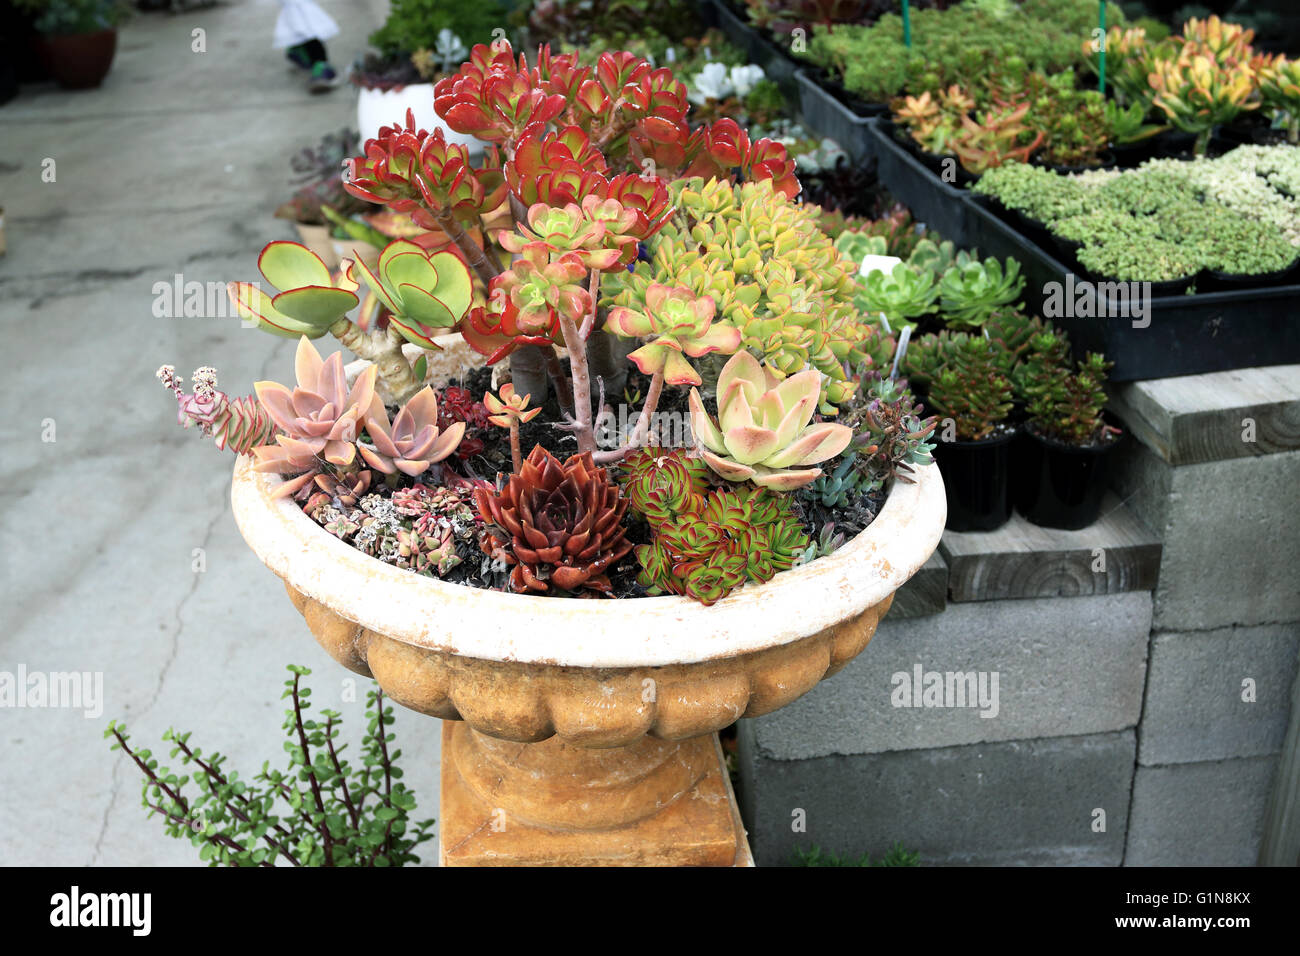 Cactus Pots For Sale Mixed Varieties Of Succulent Growing In A Pot For Sale